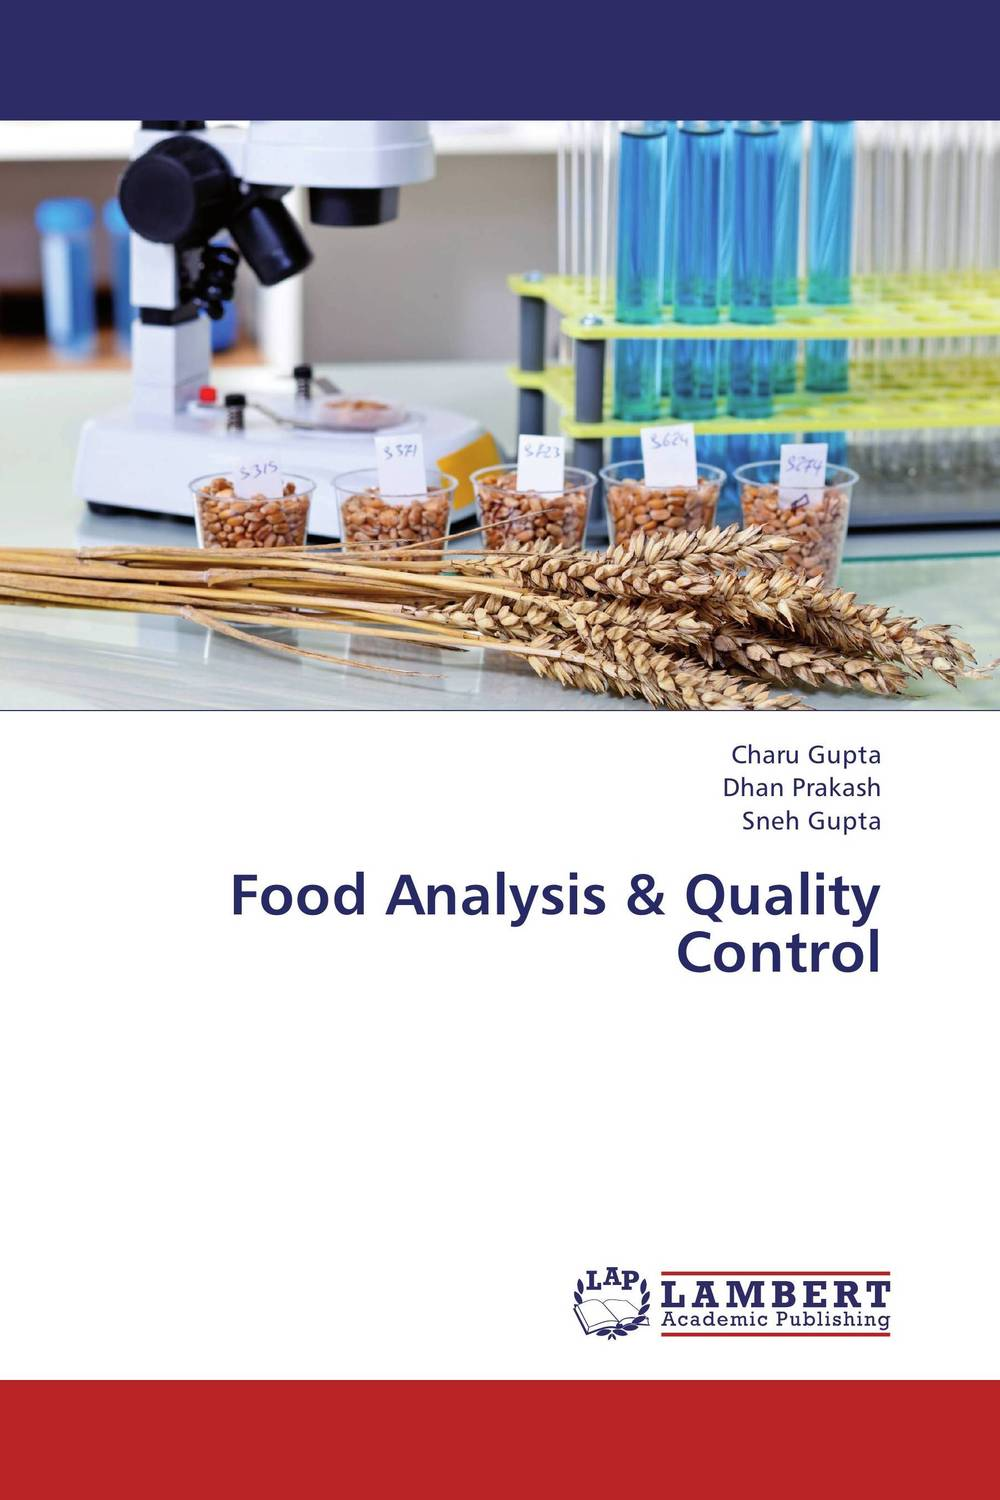 Food Analysis & Quality Control